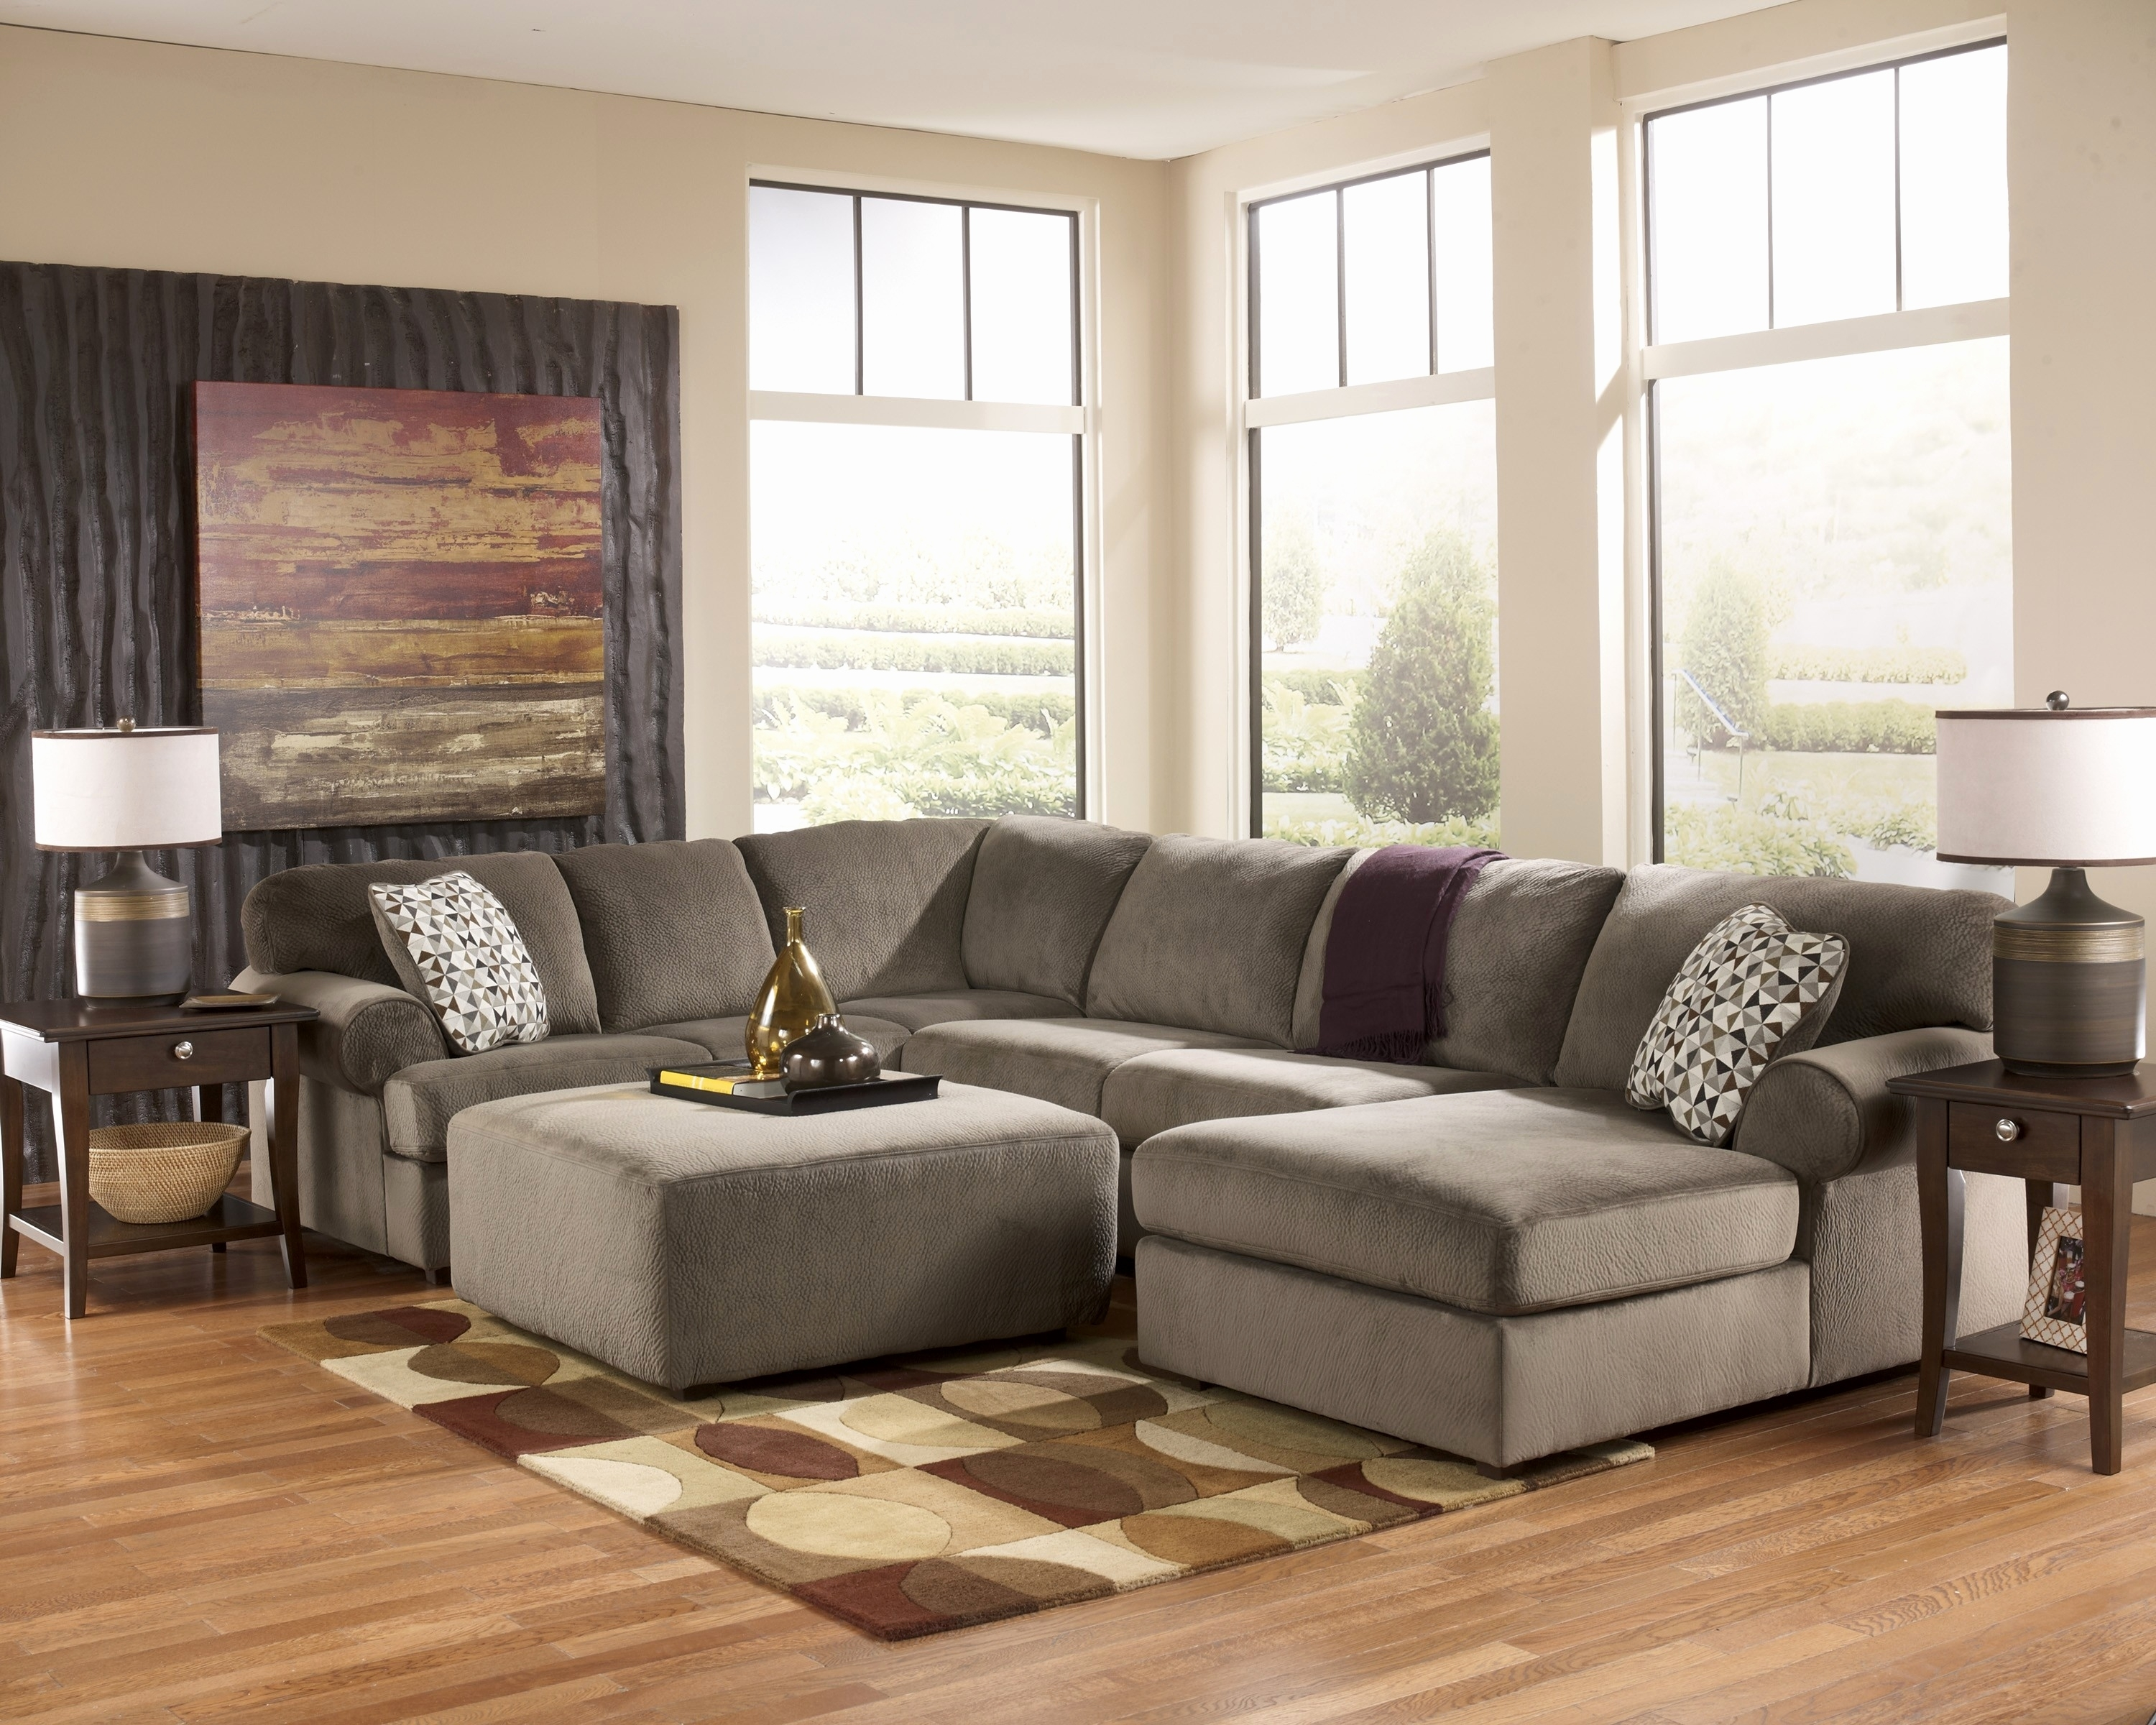 Sectional Sofa : Reclin~1 Sectional With Oversized Ottoman With Sectionals With Oversized Ottoman (View 11 of 15)